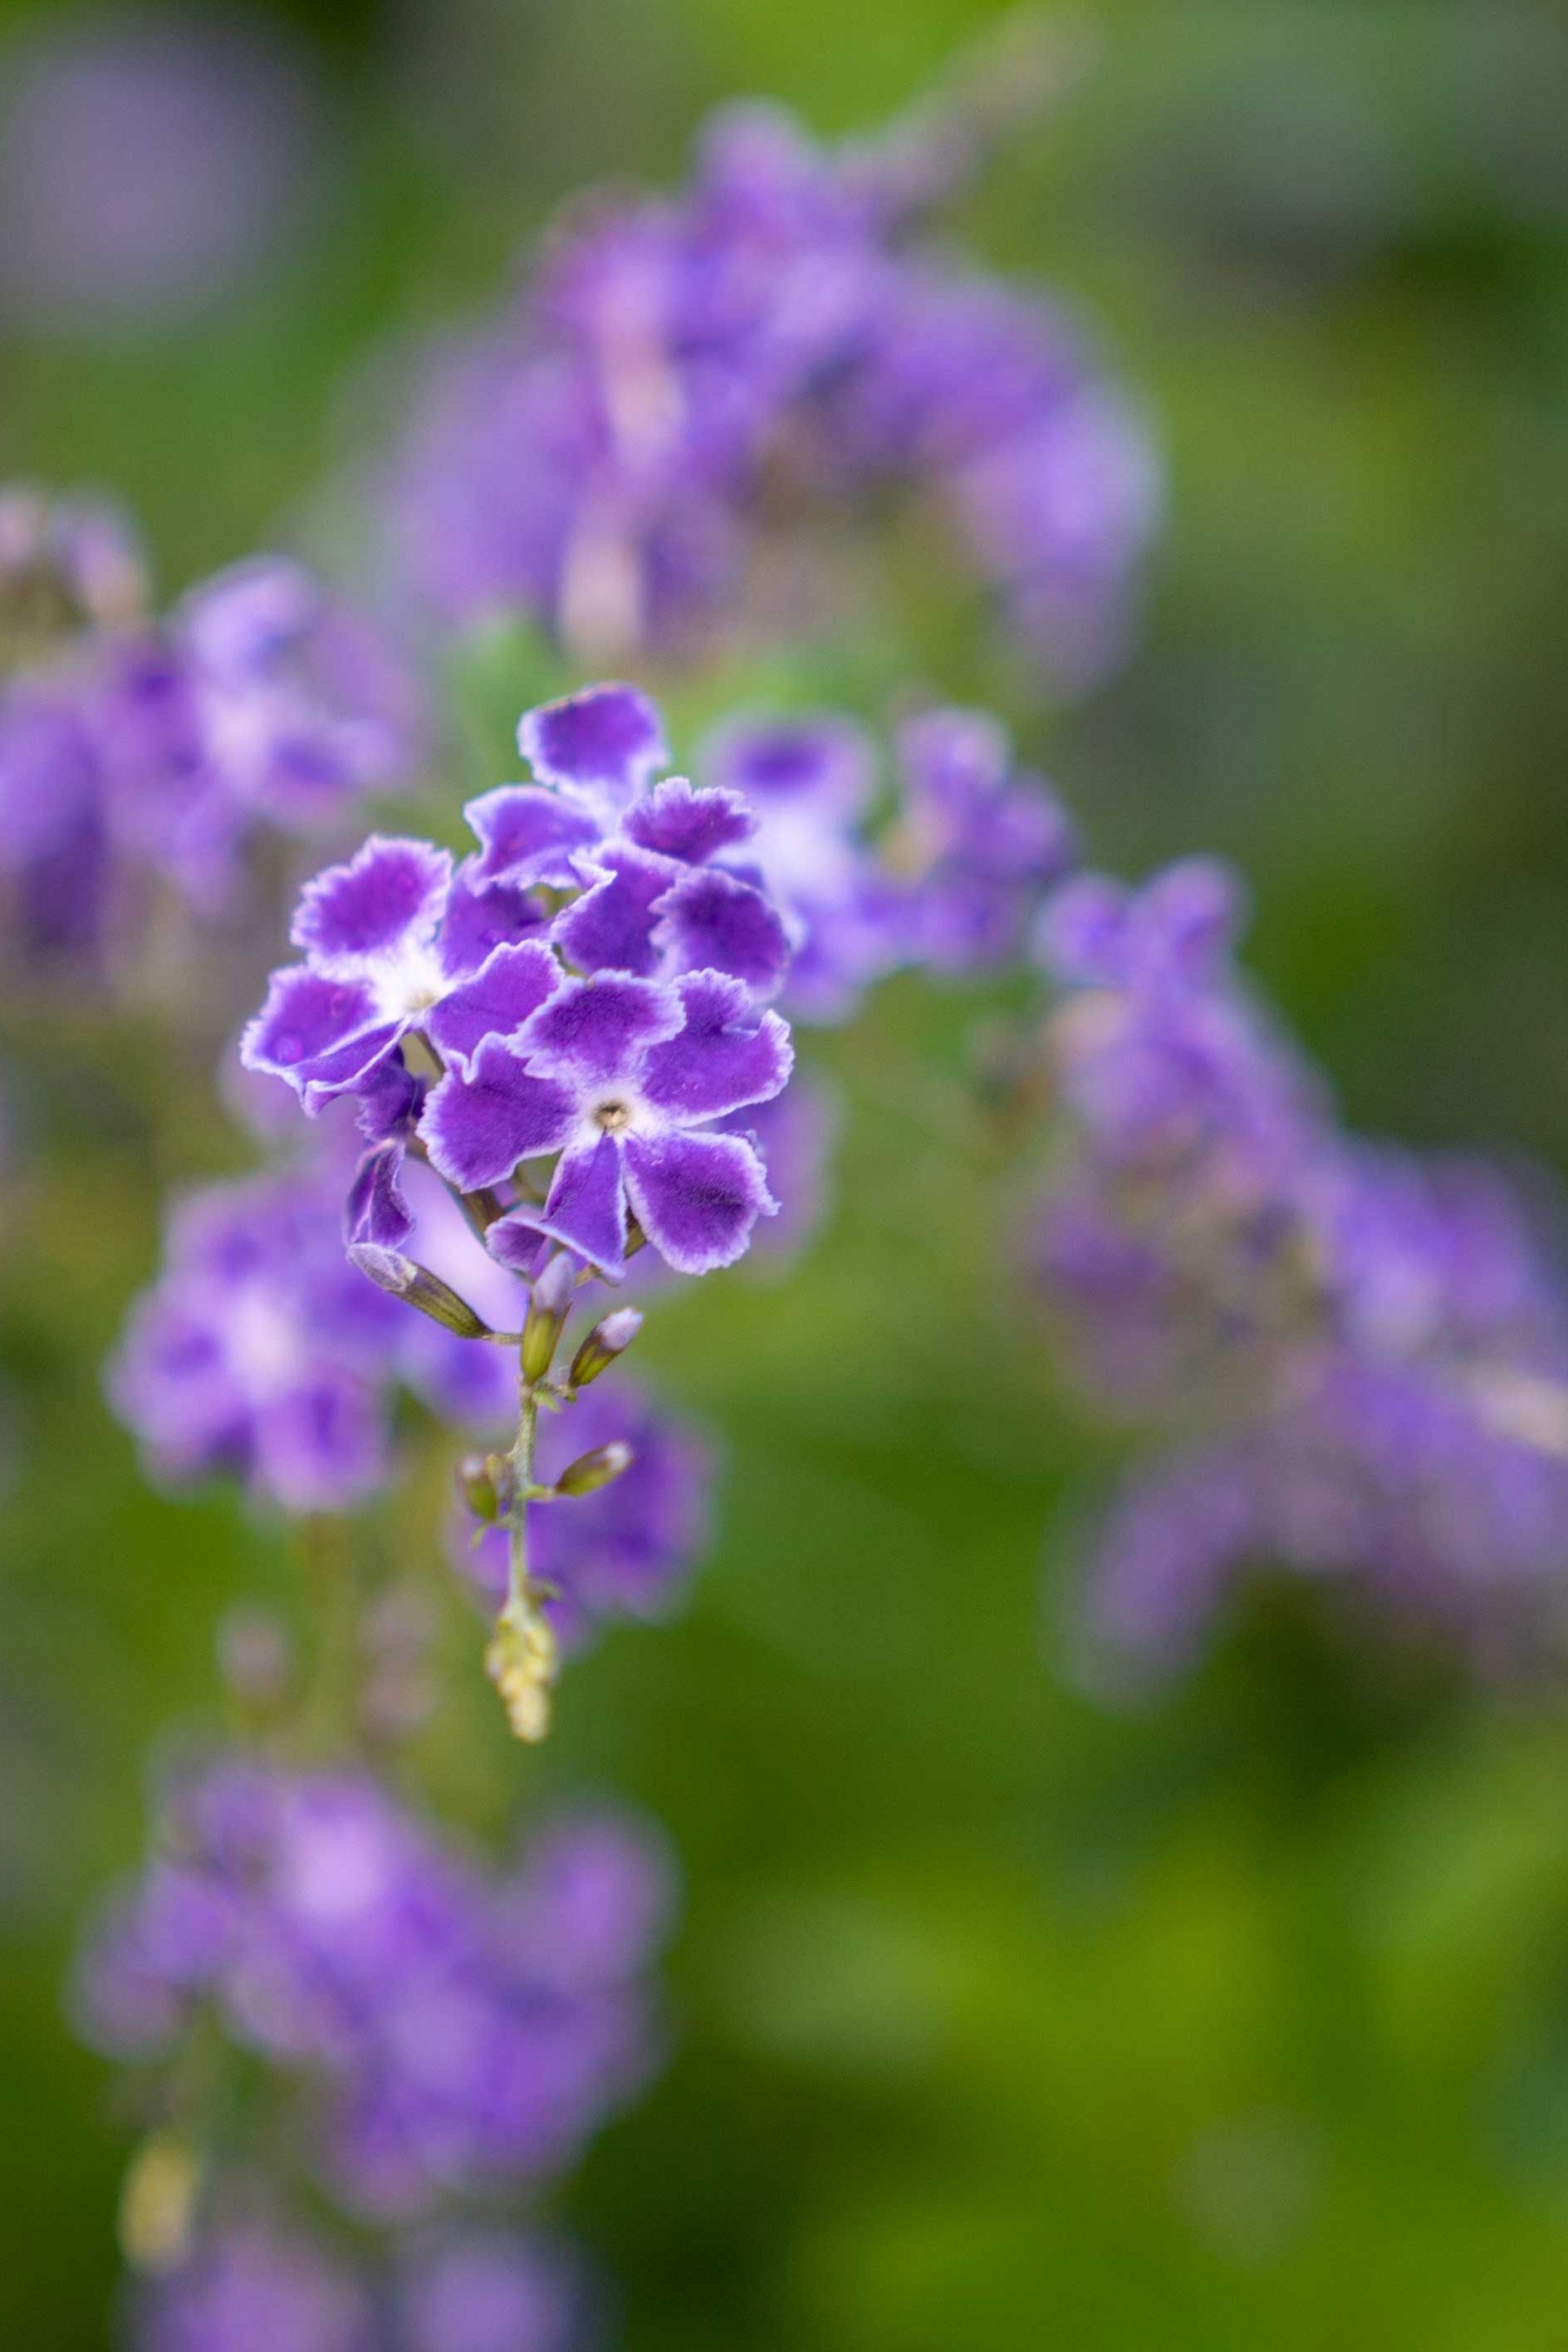 Macro Photo Of Dainty Purple Flowers On A China Doll Plant In 2020 China Doll Plant Purple Flowers Macro Photos